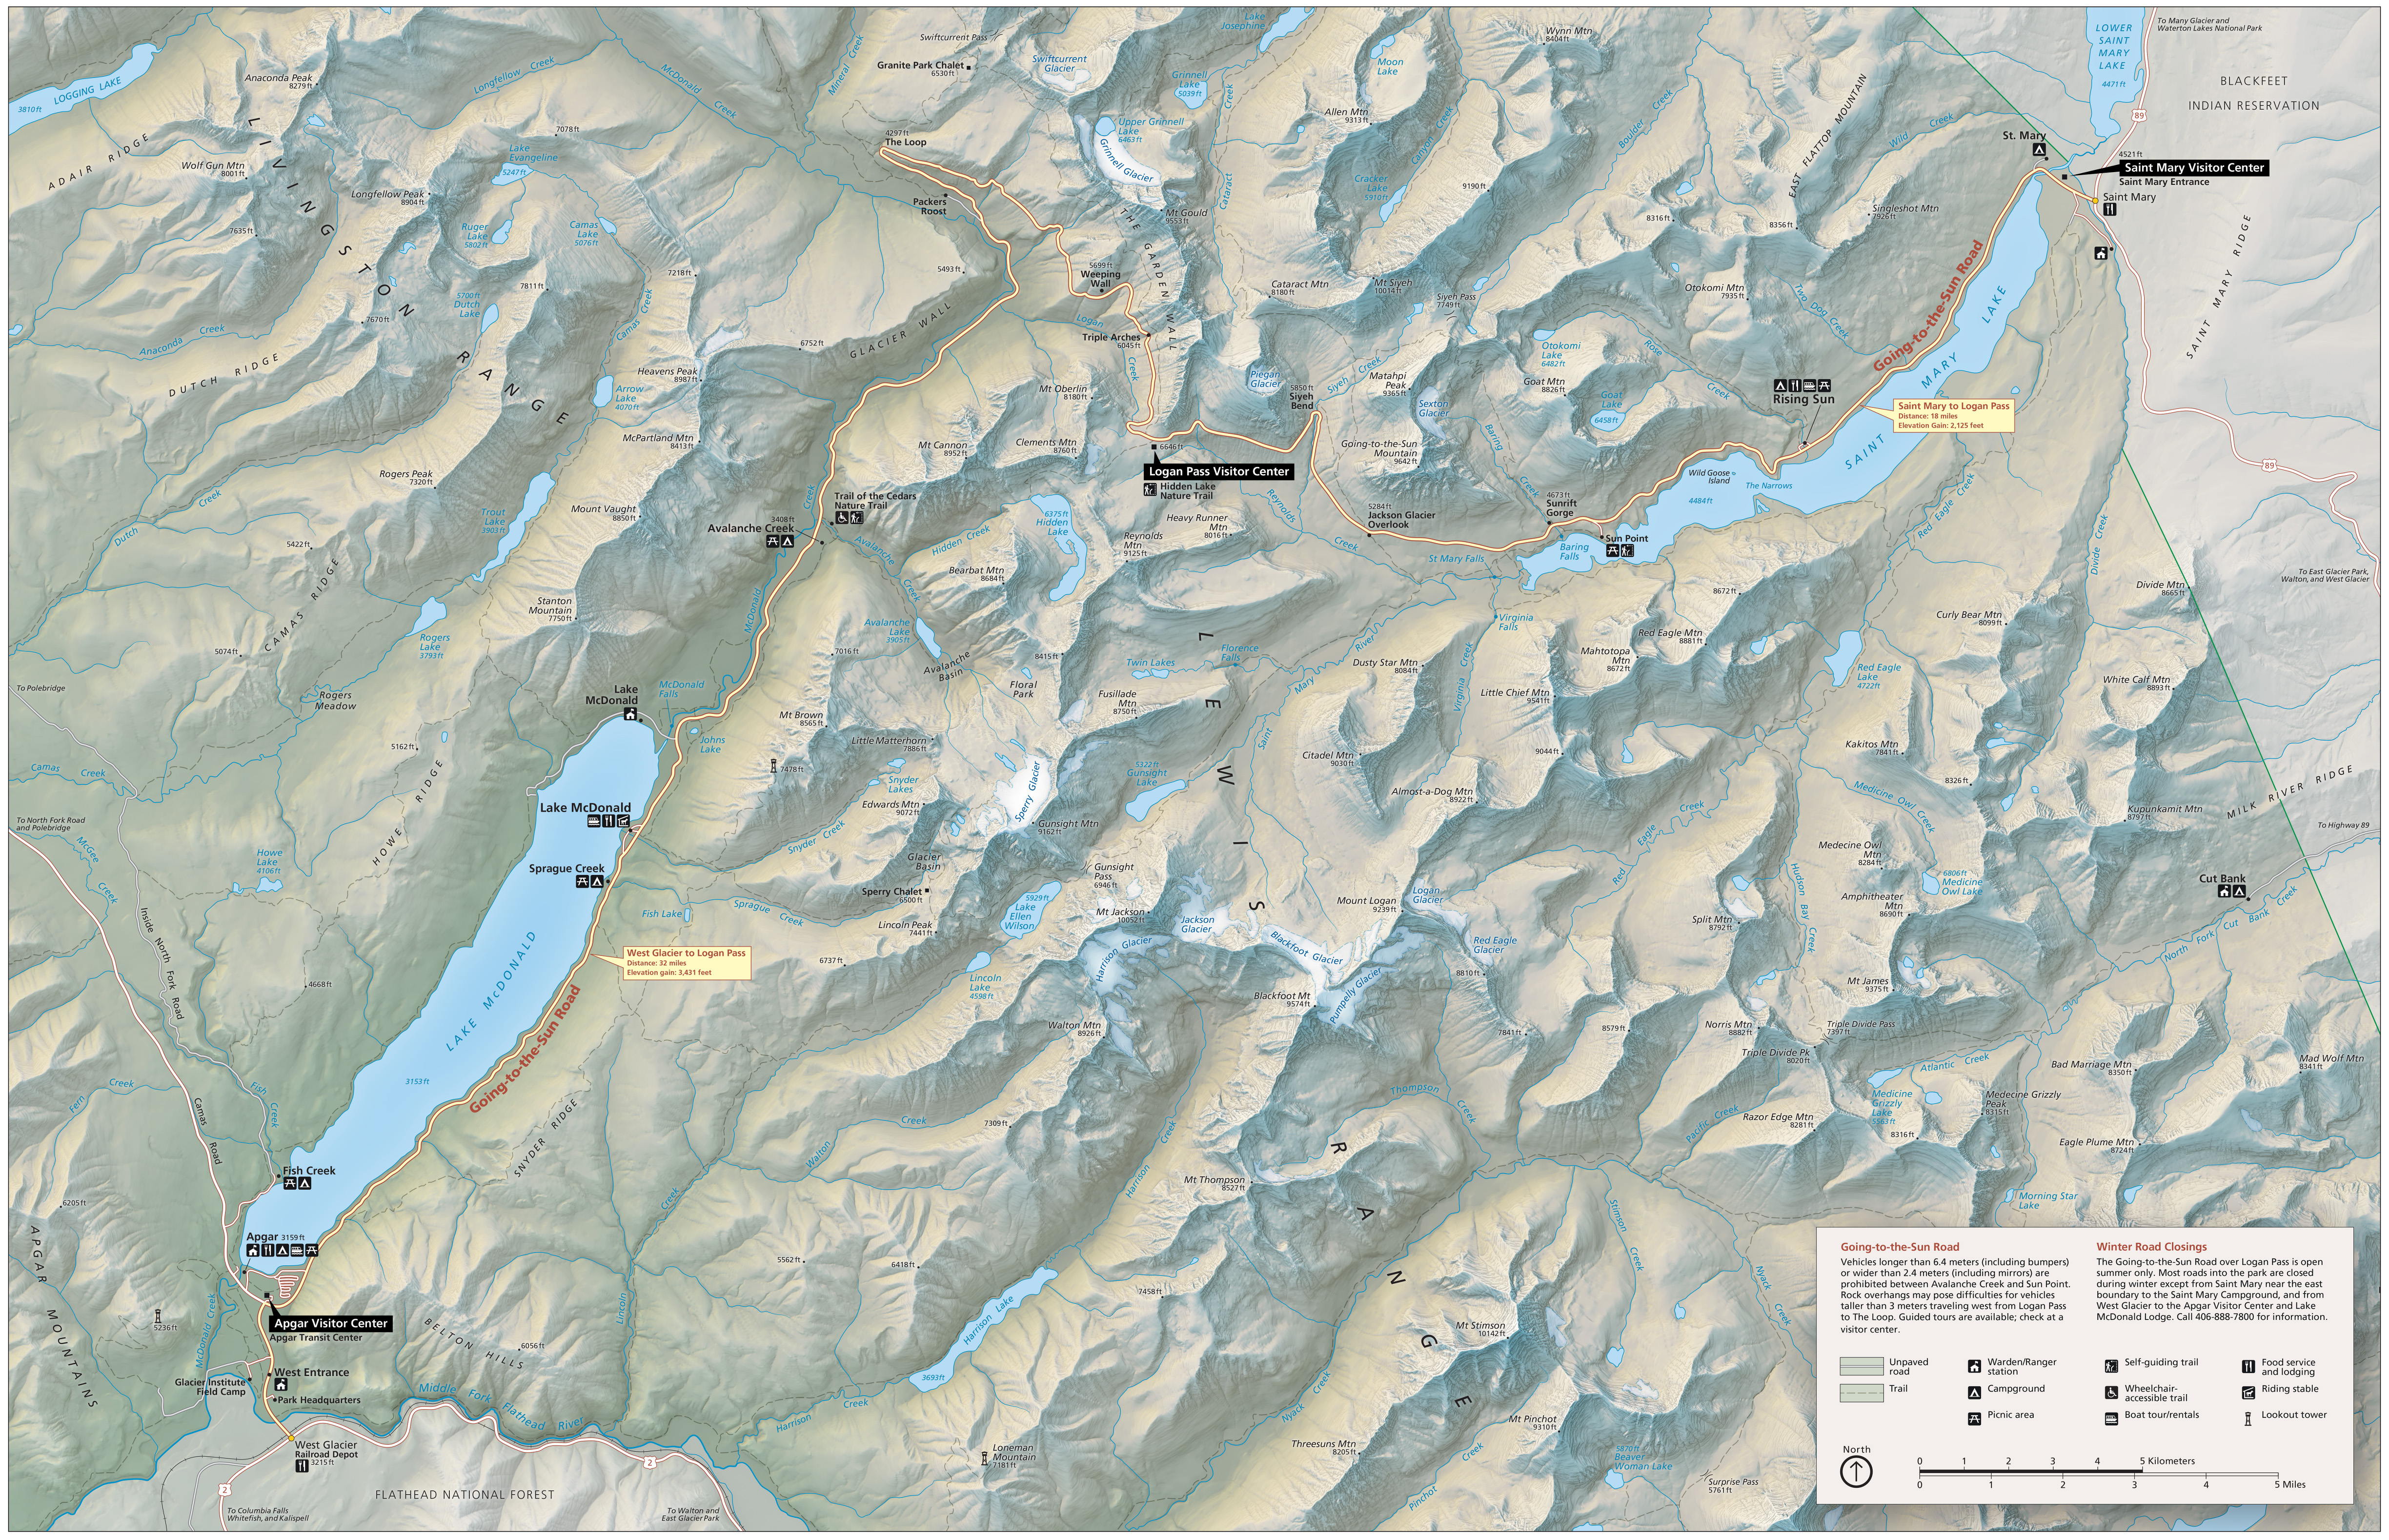 Glacier Maps | NPMaps.com - just free maps, period. on arizona national parks maps, montana yellowstone national parks maps, alaskan national parks maps, yosemite backpacking trail maps,